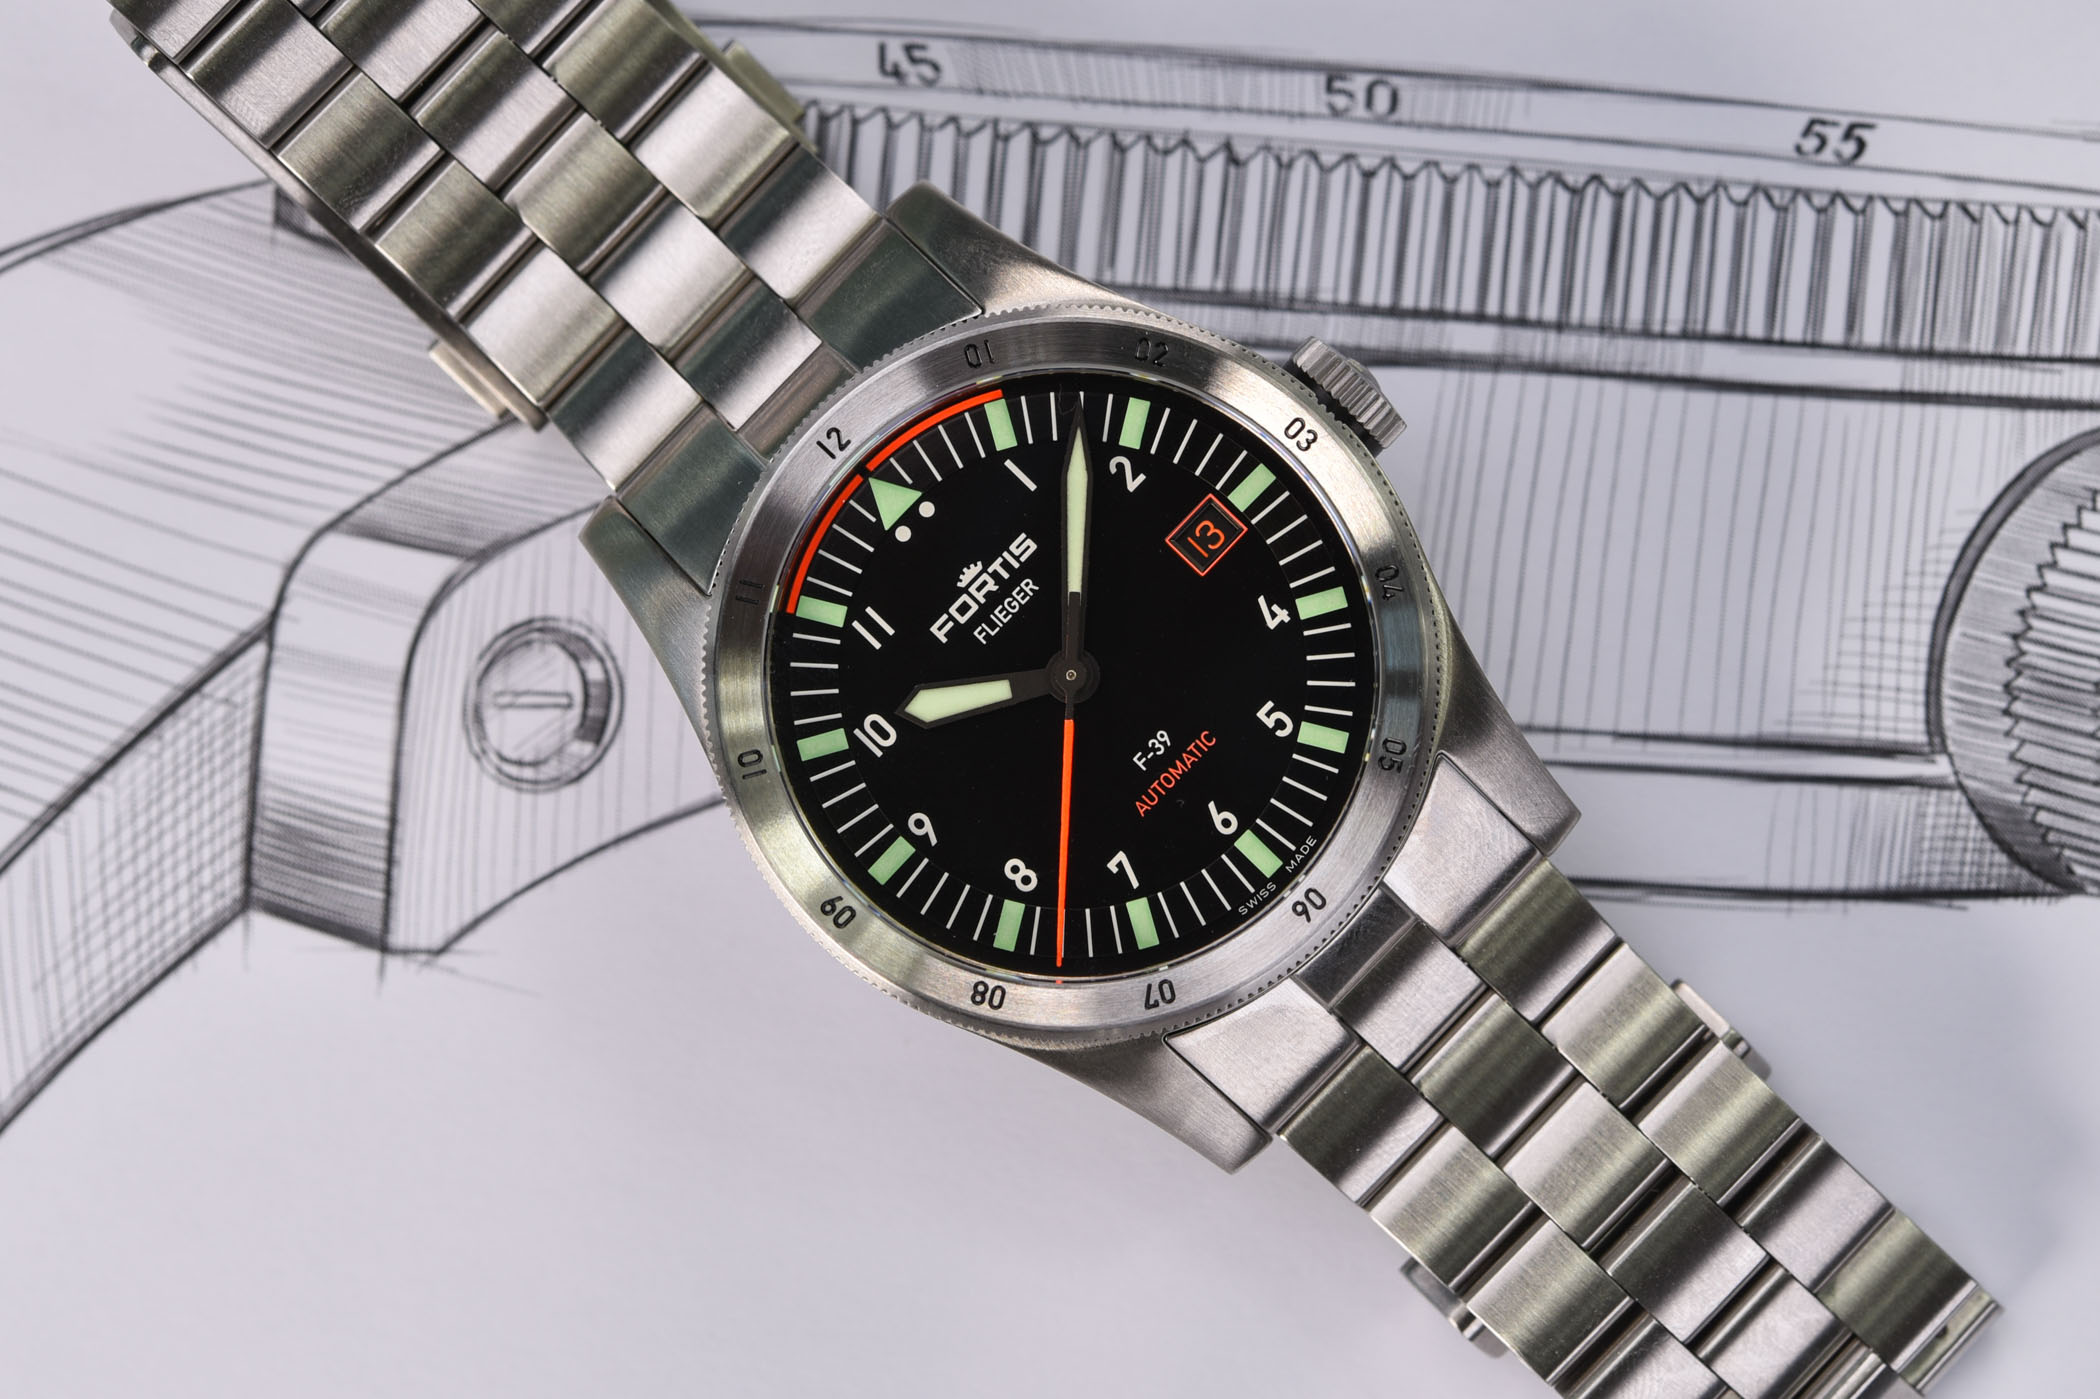 Fortis Flieger F-41 Automatic - Fortis Flieger F-39 Automatic - 10